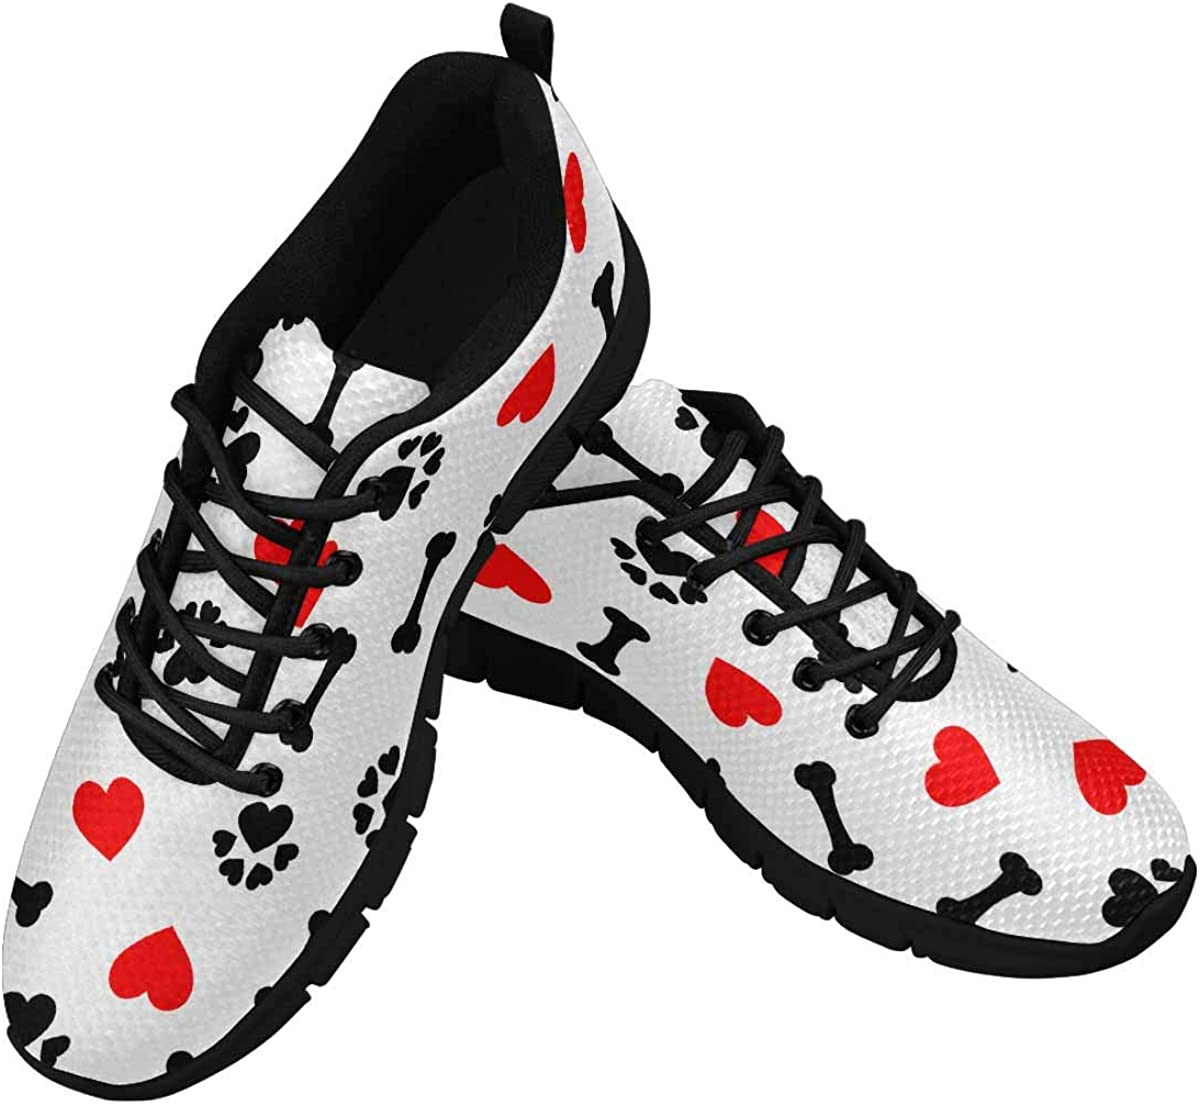 INTERESTPRINT Dog Bone, Paw Print and Red Heart Lightweight Mesh Breathable Sneakers for Women